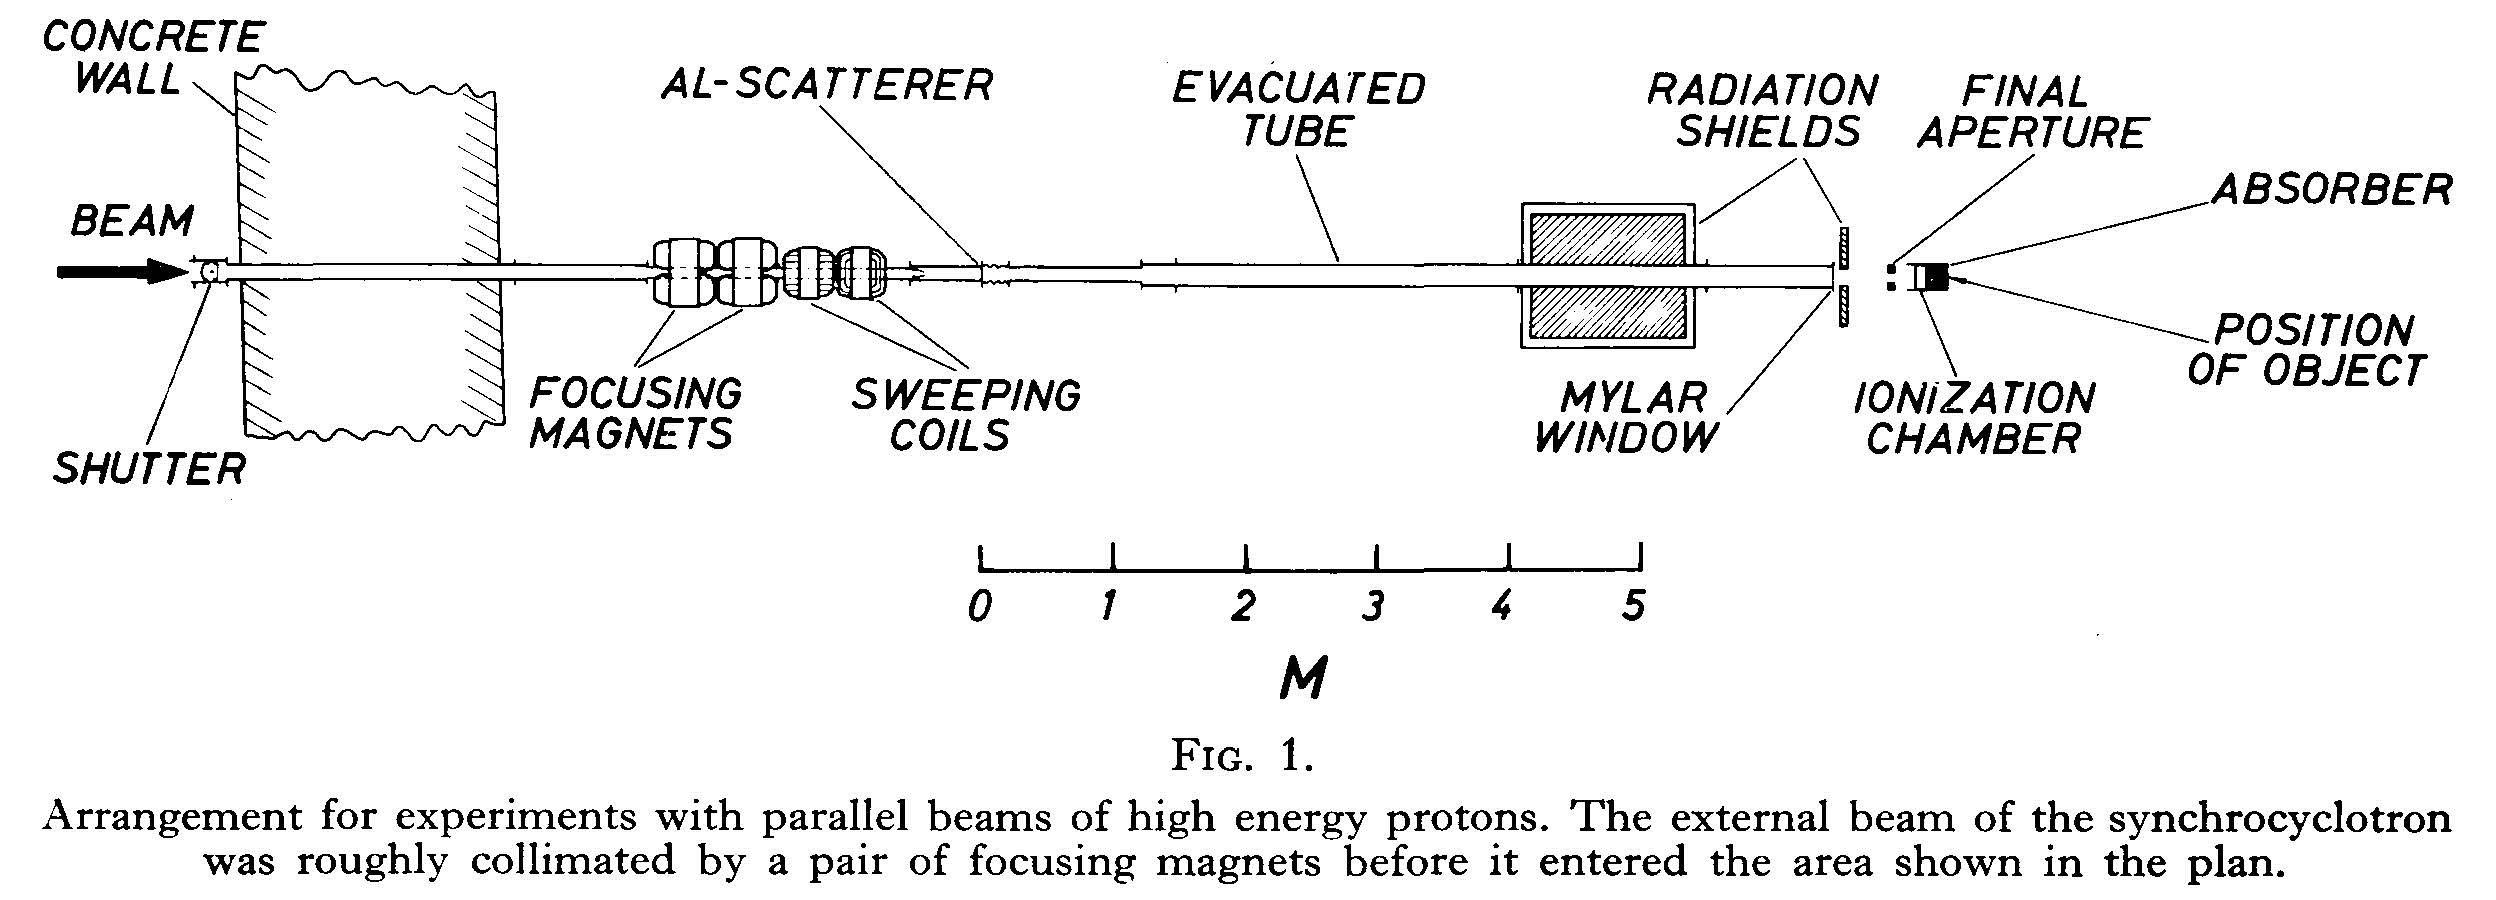 Arrangement for experiments with high energy protons